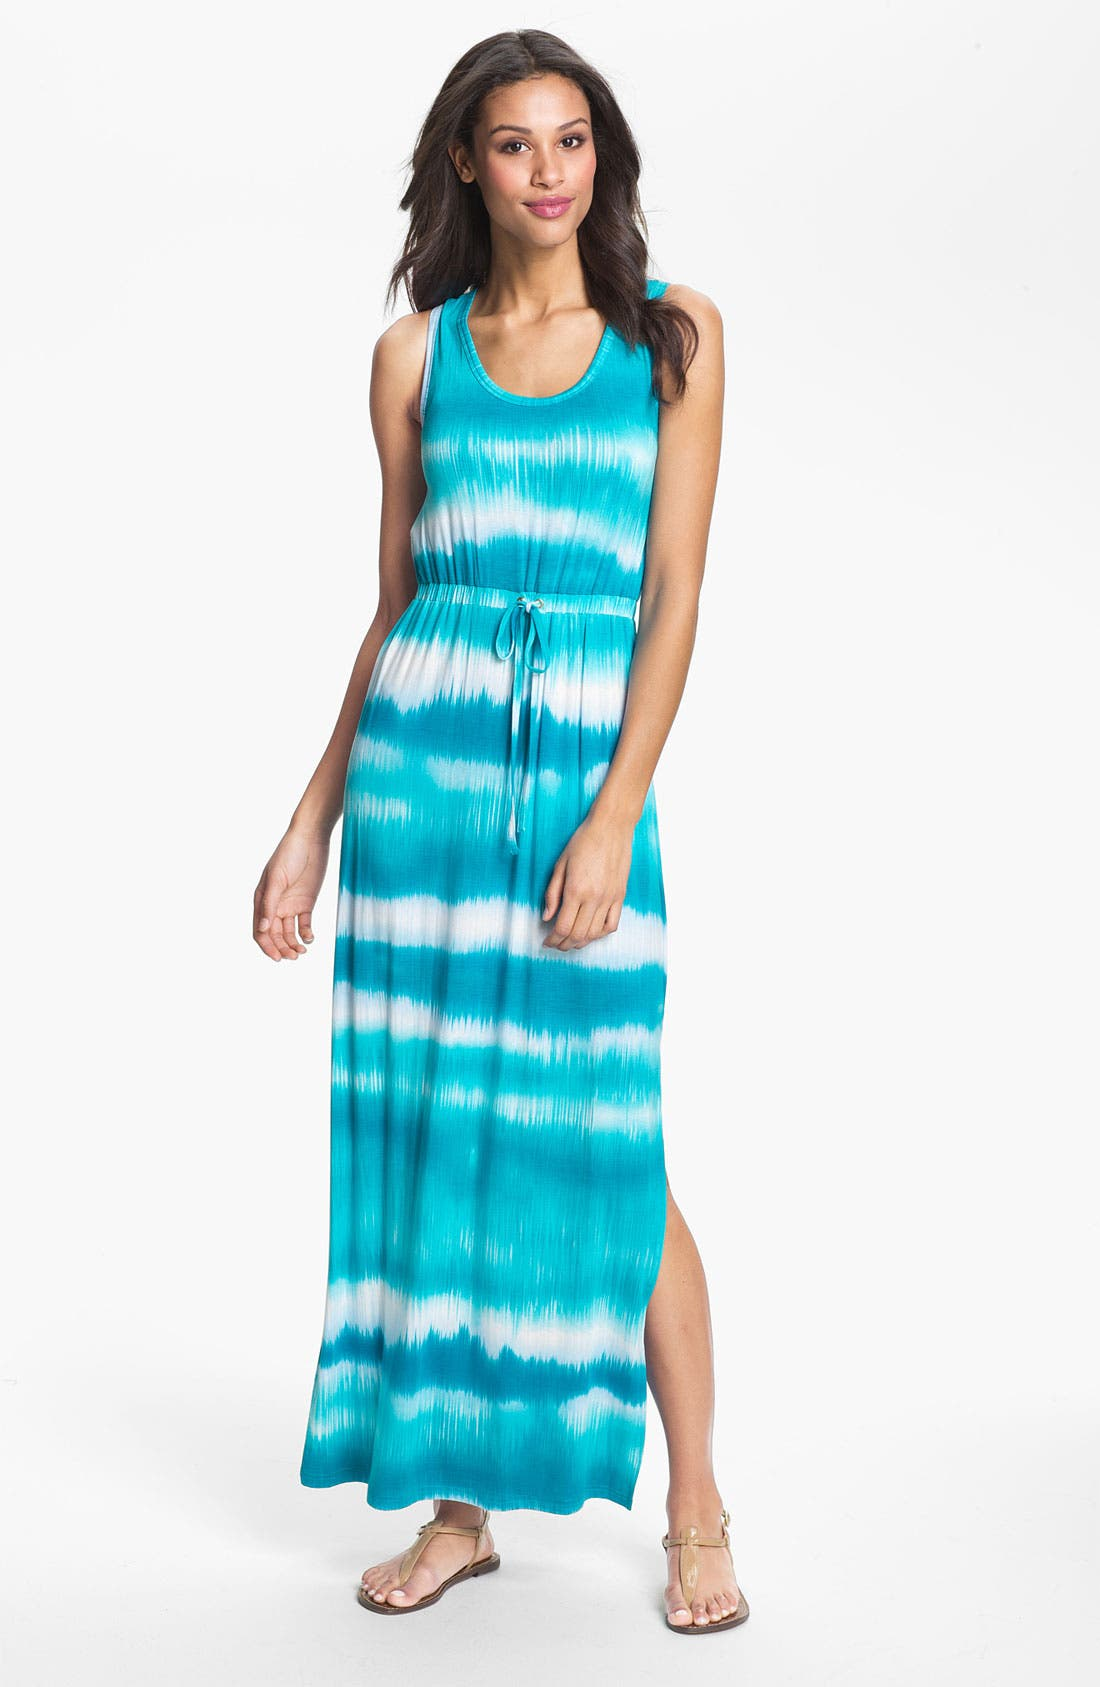 Alternate Image 1 Selected - Calvin Klein Racerback Tie Dye Tank Dress